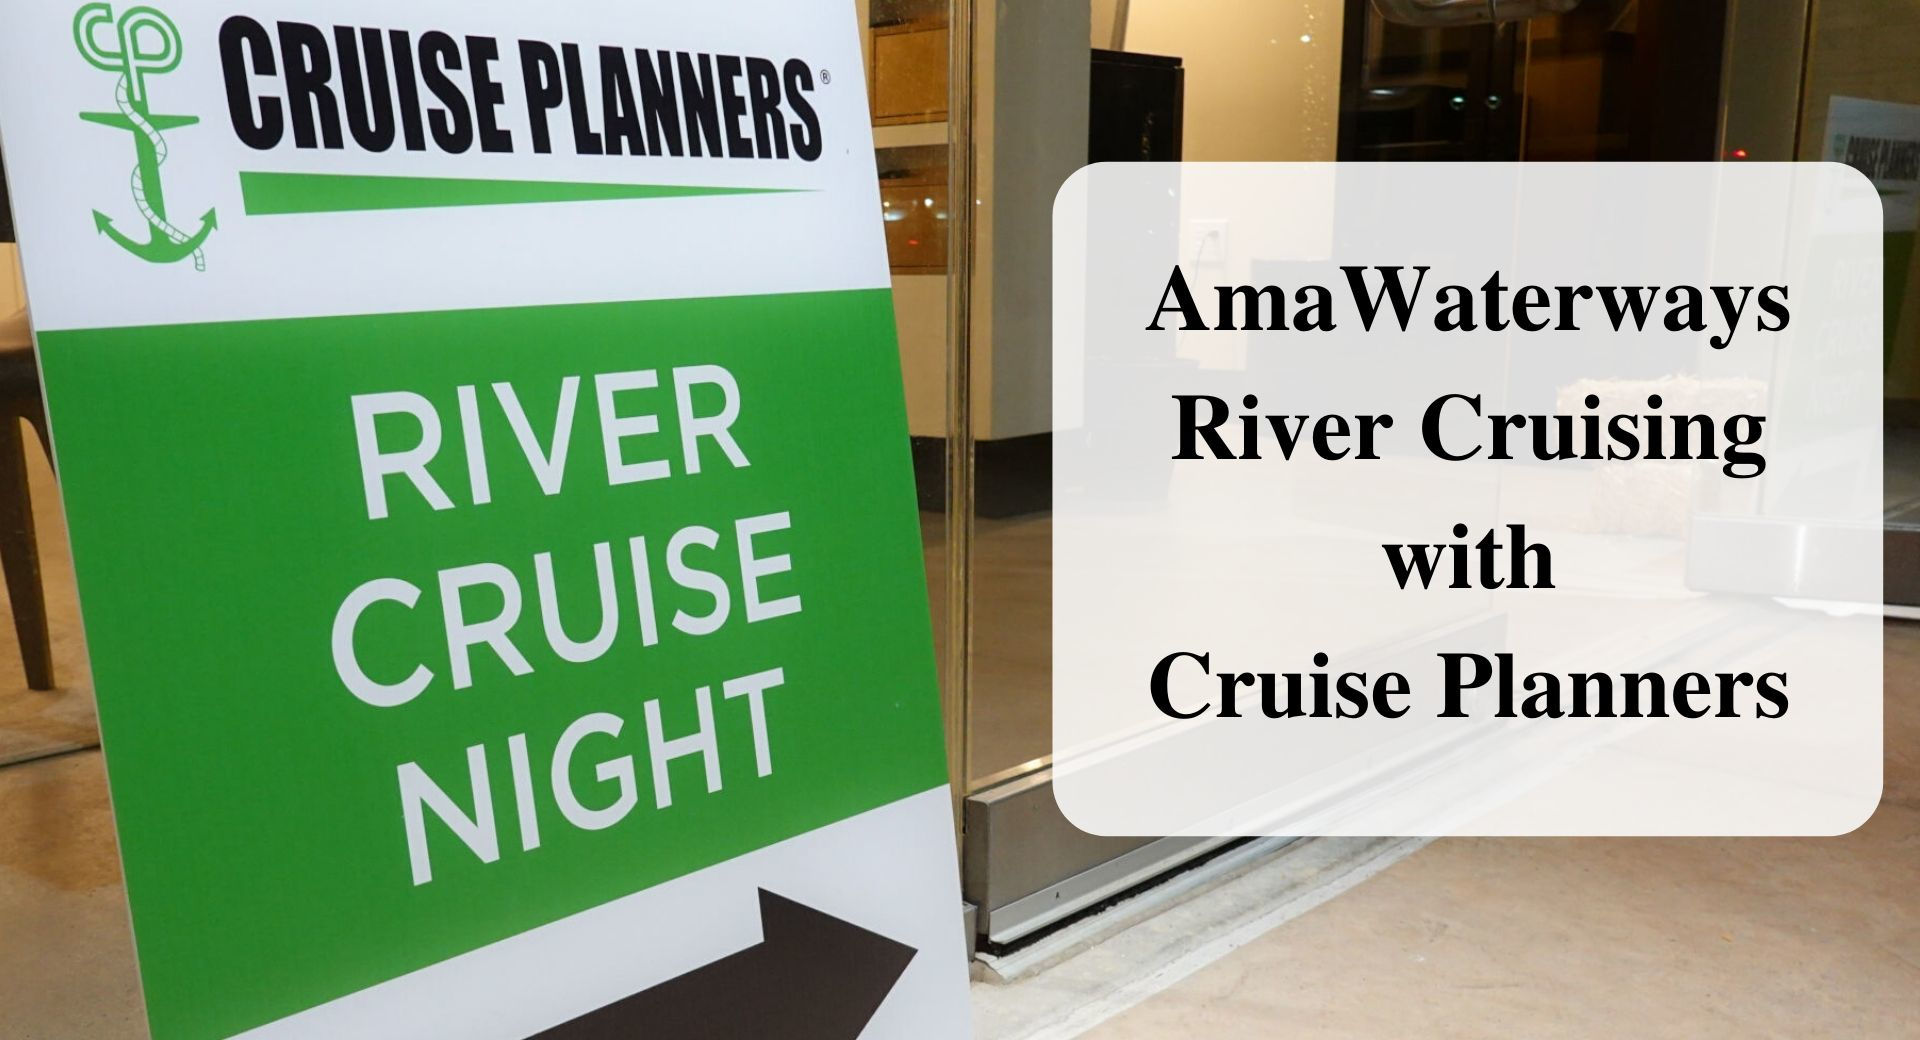 AmaWaterways River Cruising with Cruise Planners Forever sabbatical